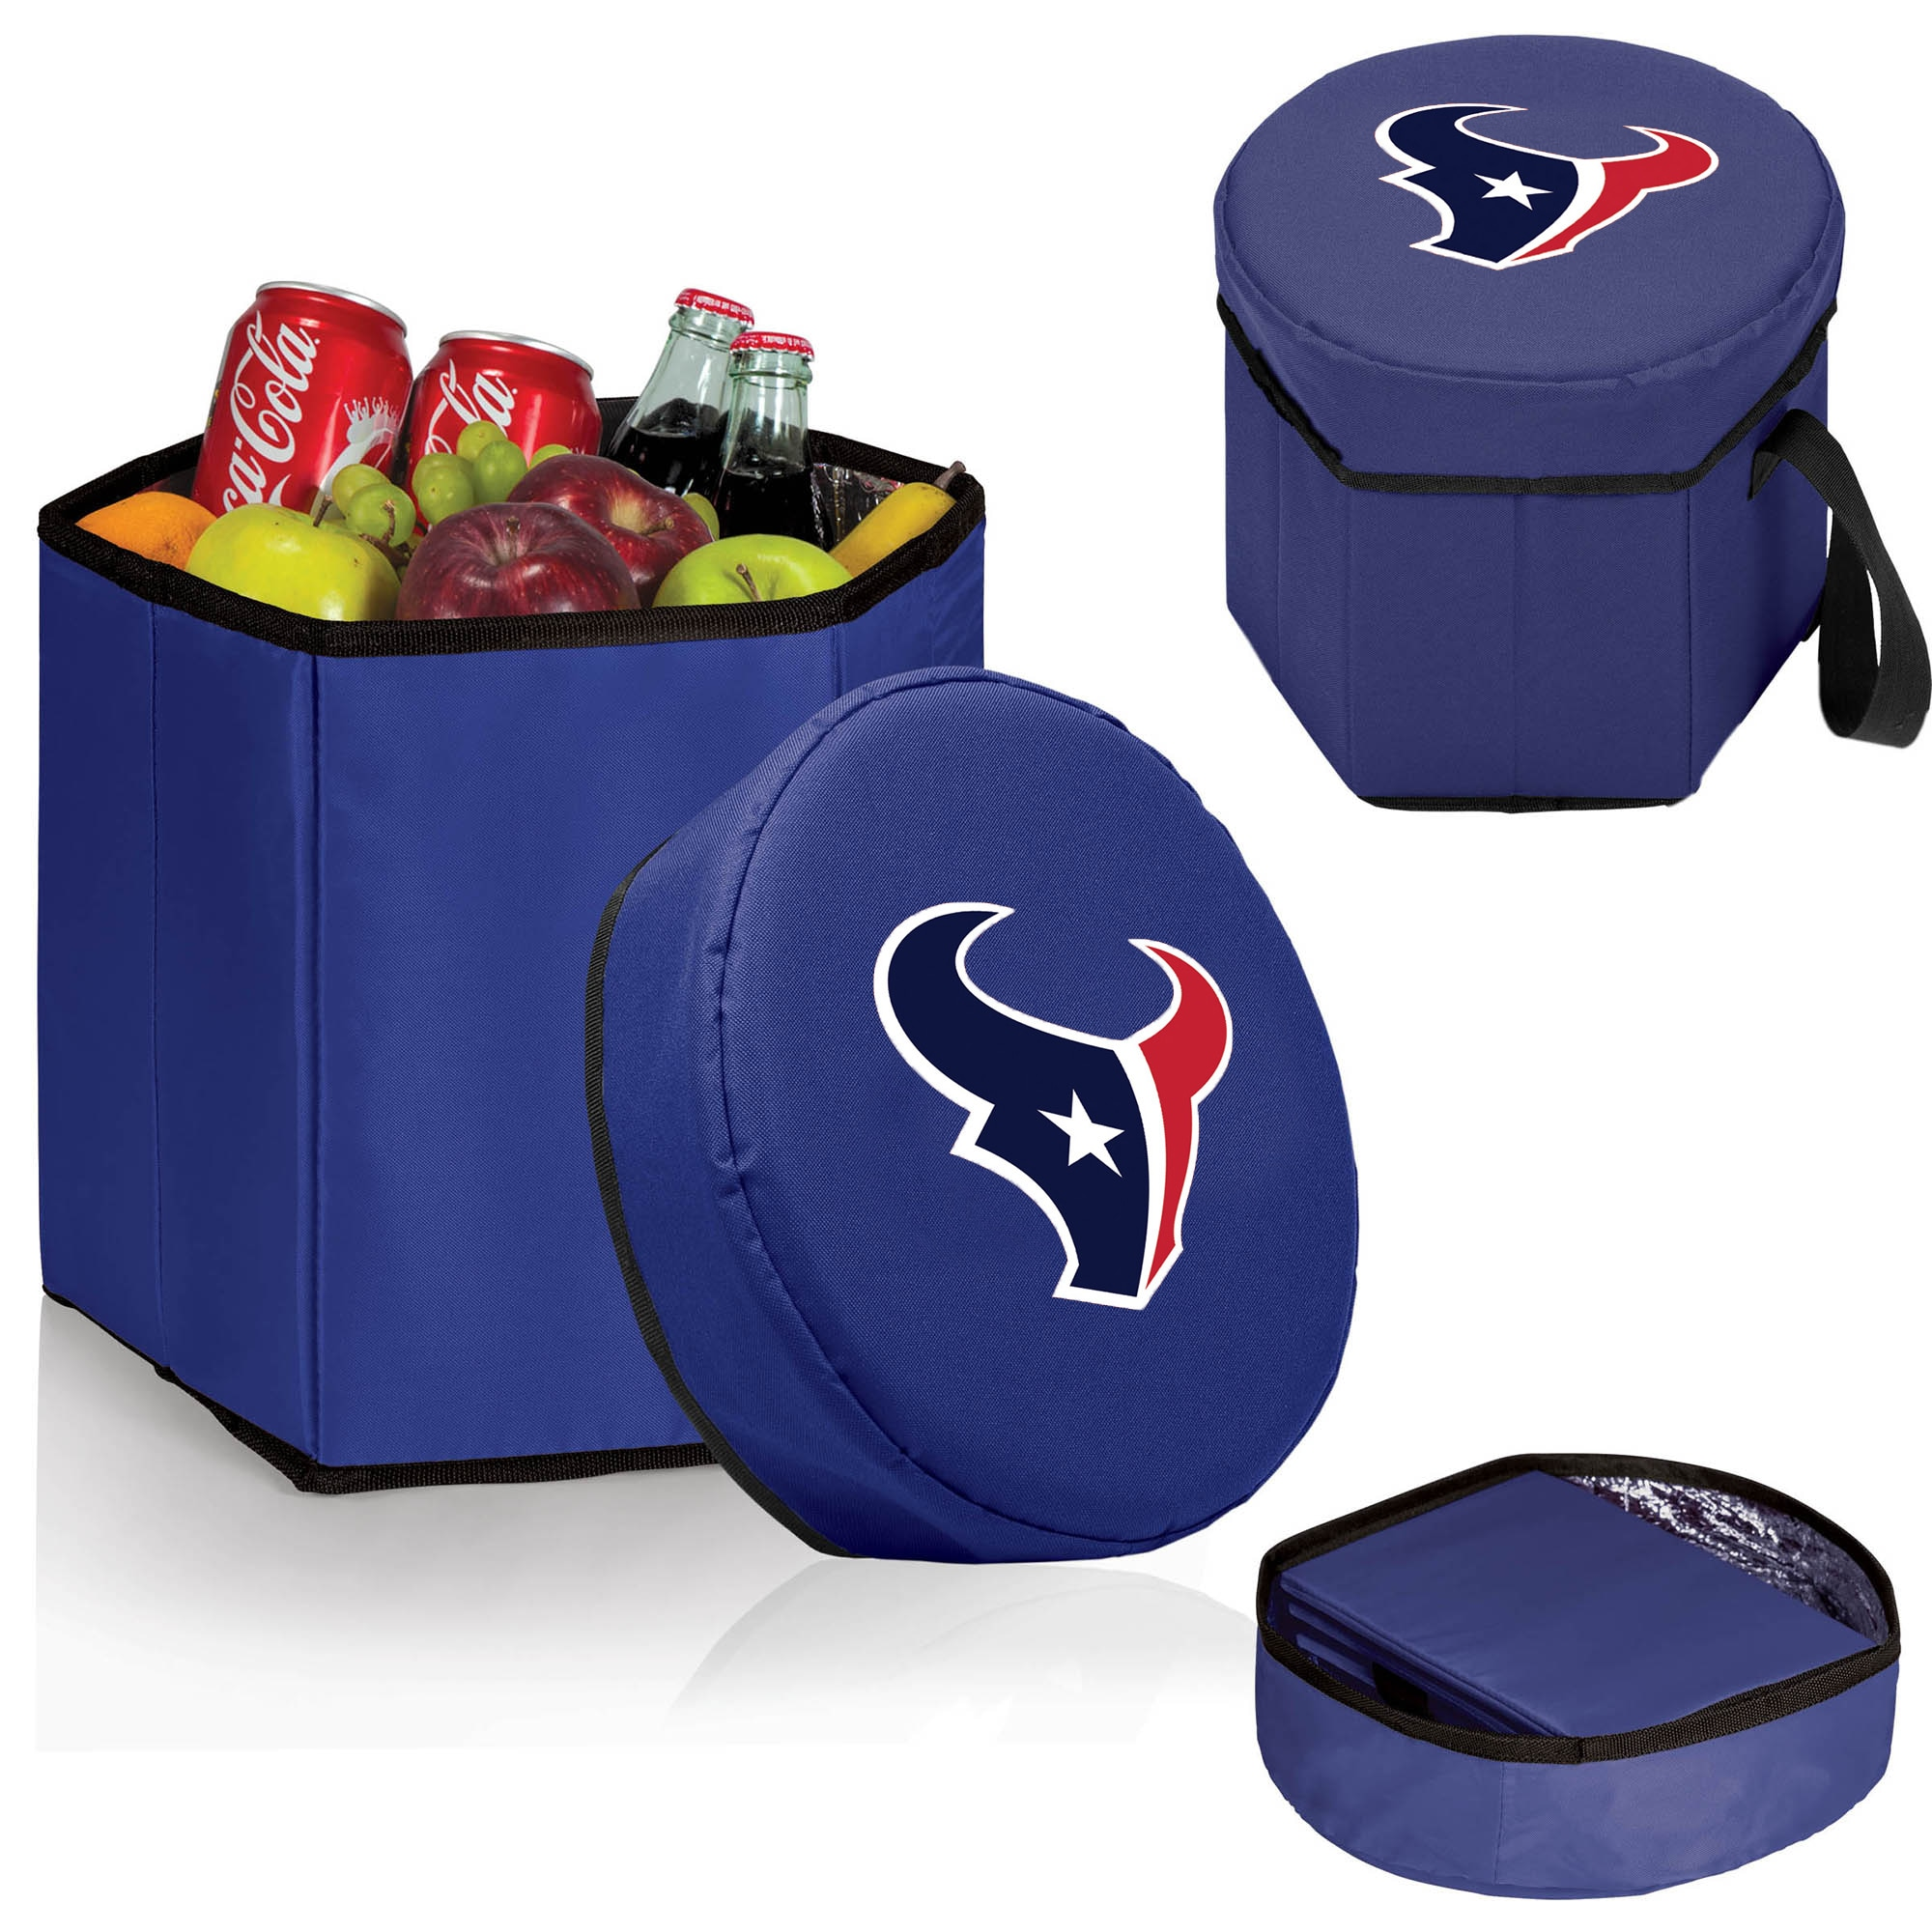 Houston Texans 12 Quart Bongo Cooler - Navy